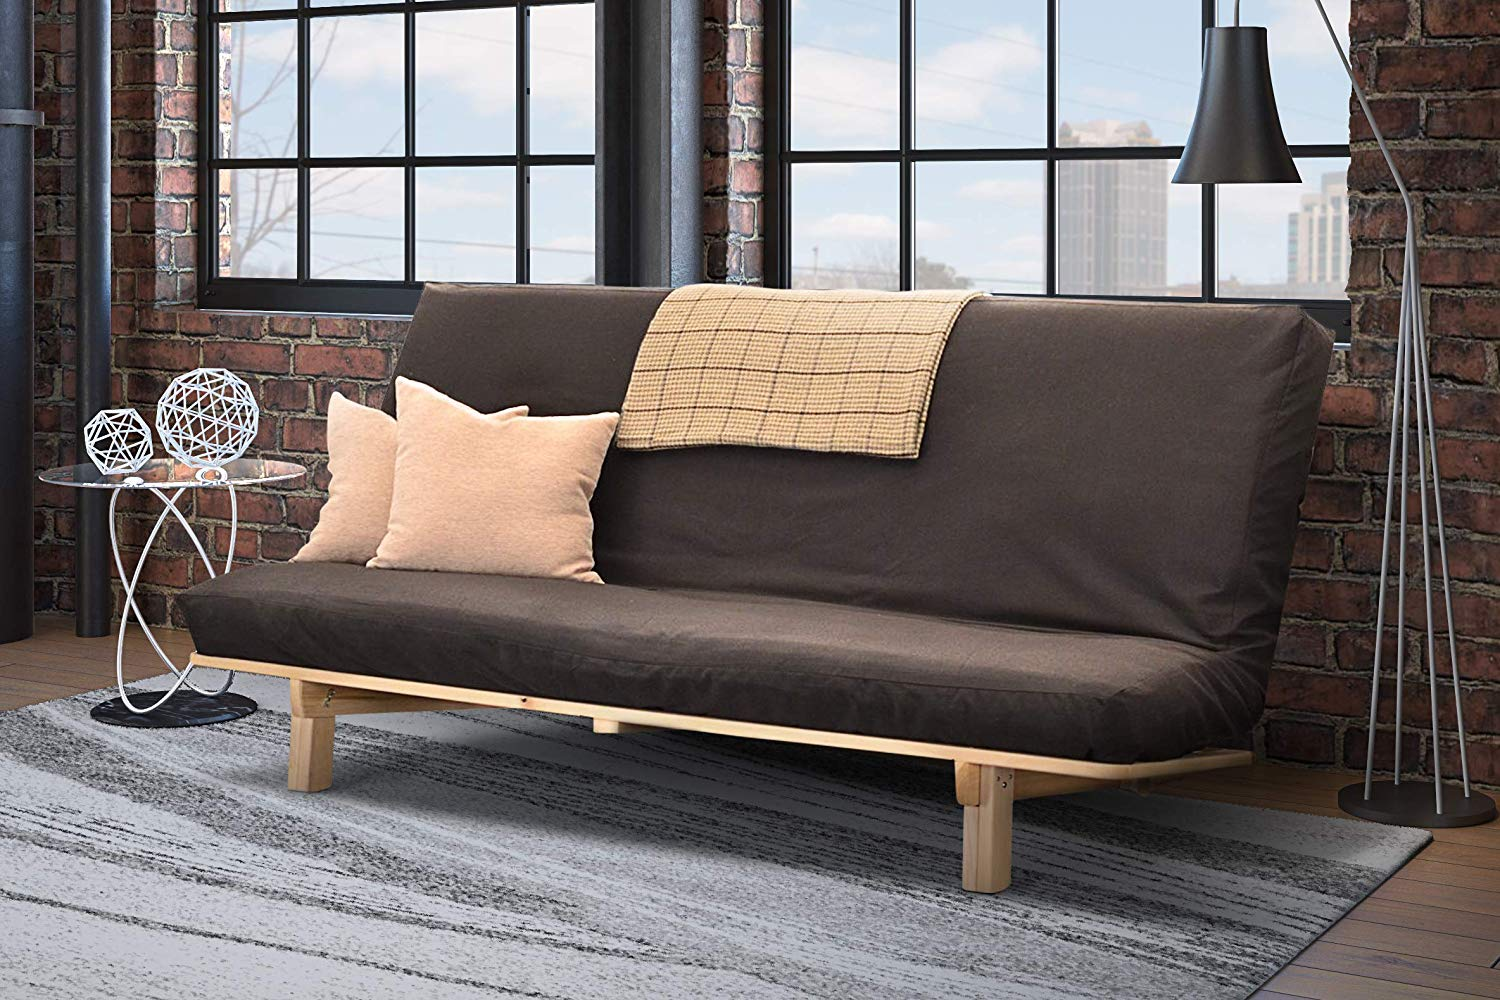 The Best Futon Mattress To Help You Save Space And Get Great Sleep Spy